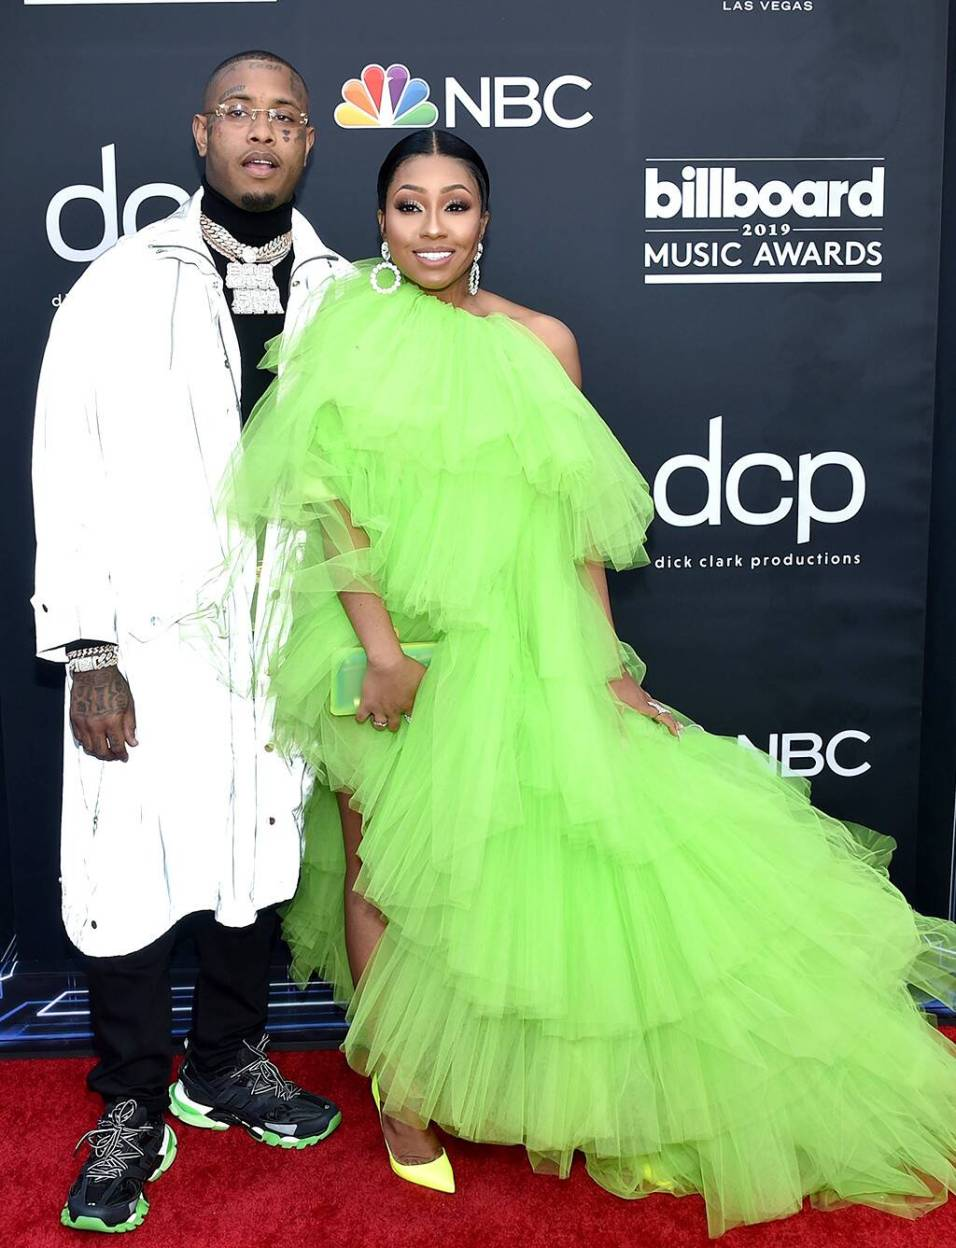 40 The Looks You Need to See From Billboard Music Awards 2019 Red Carpet 31